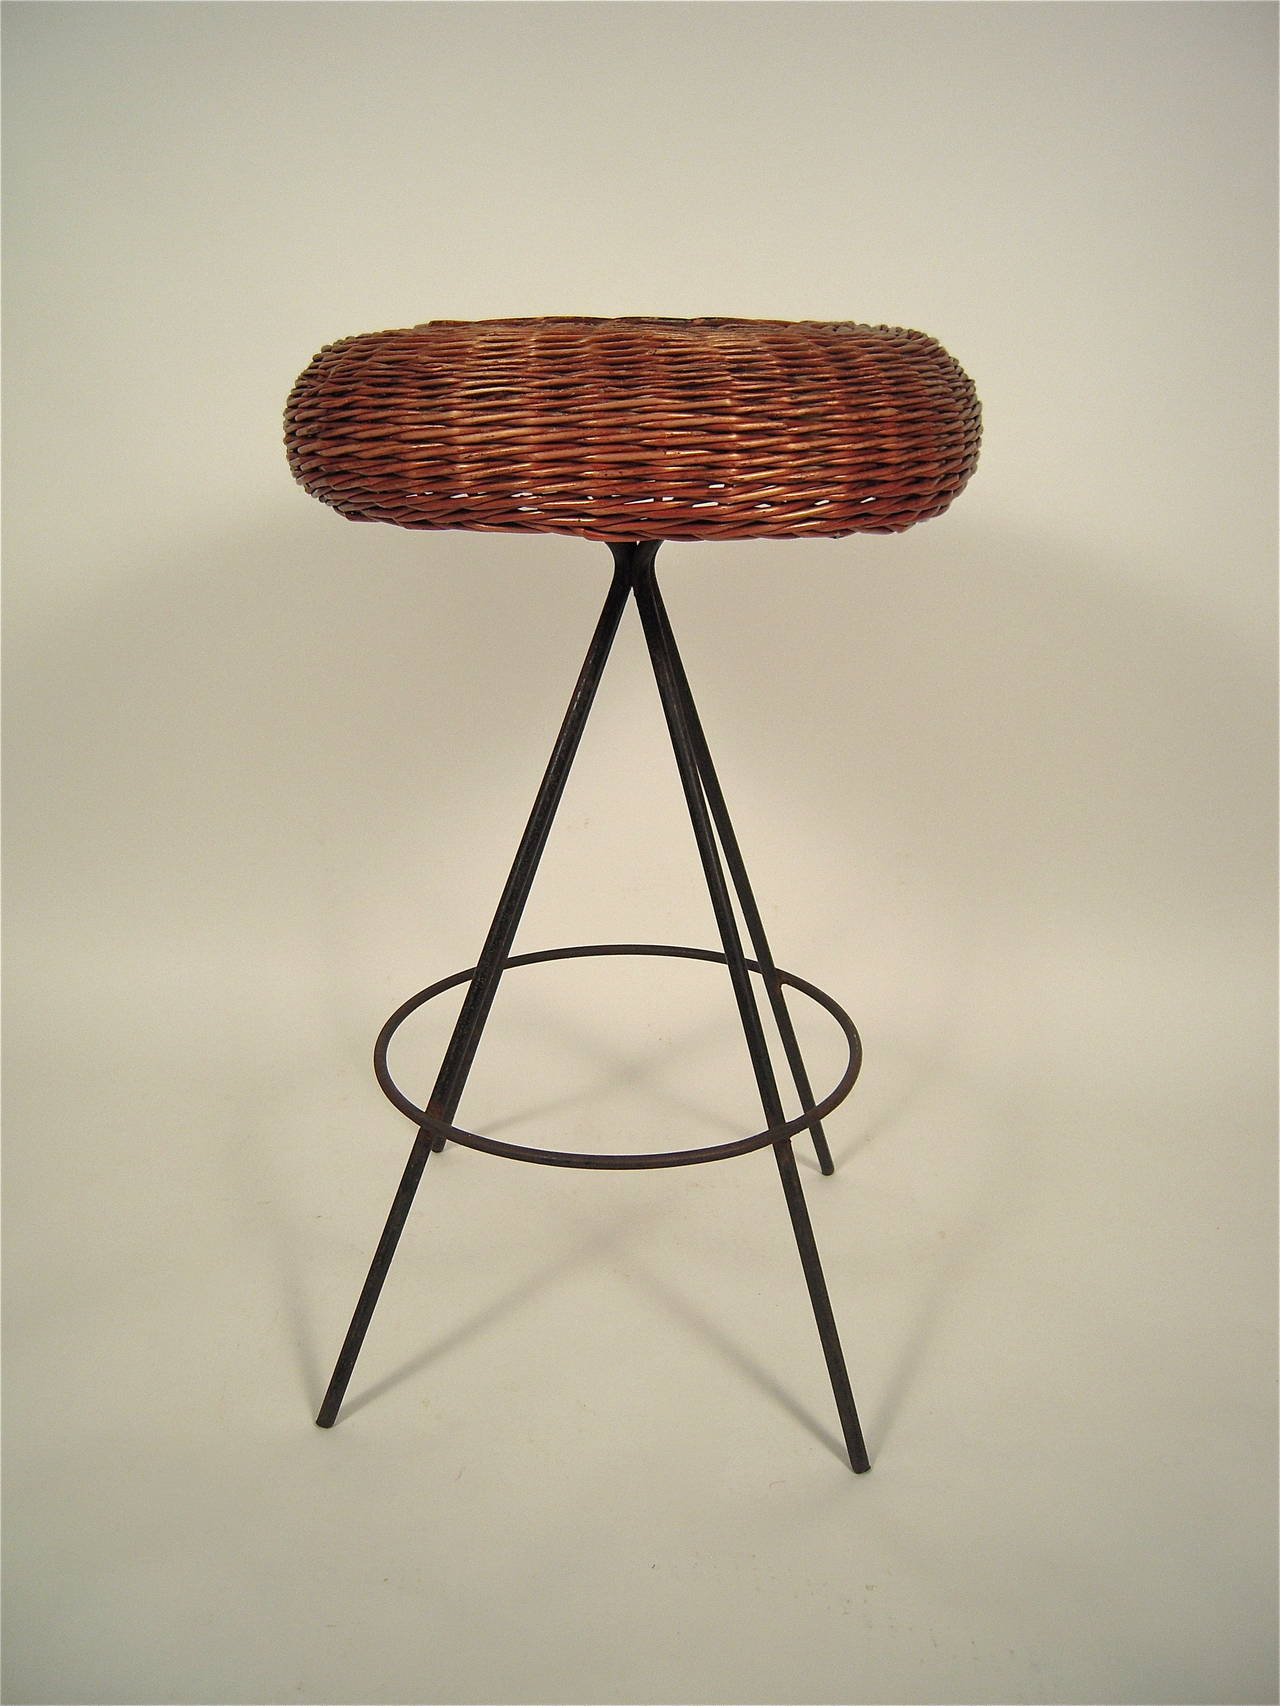 Mid Century Modern Wicker and Metal Bar Stool For Sale at 1stdibs